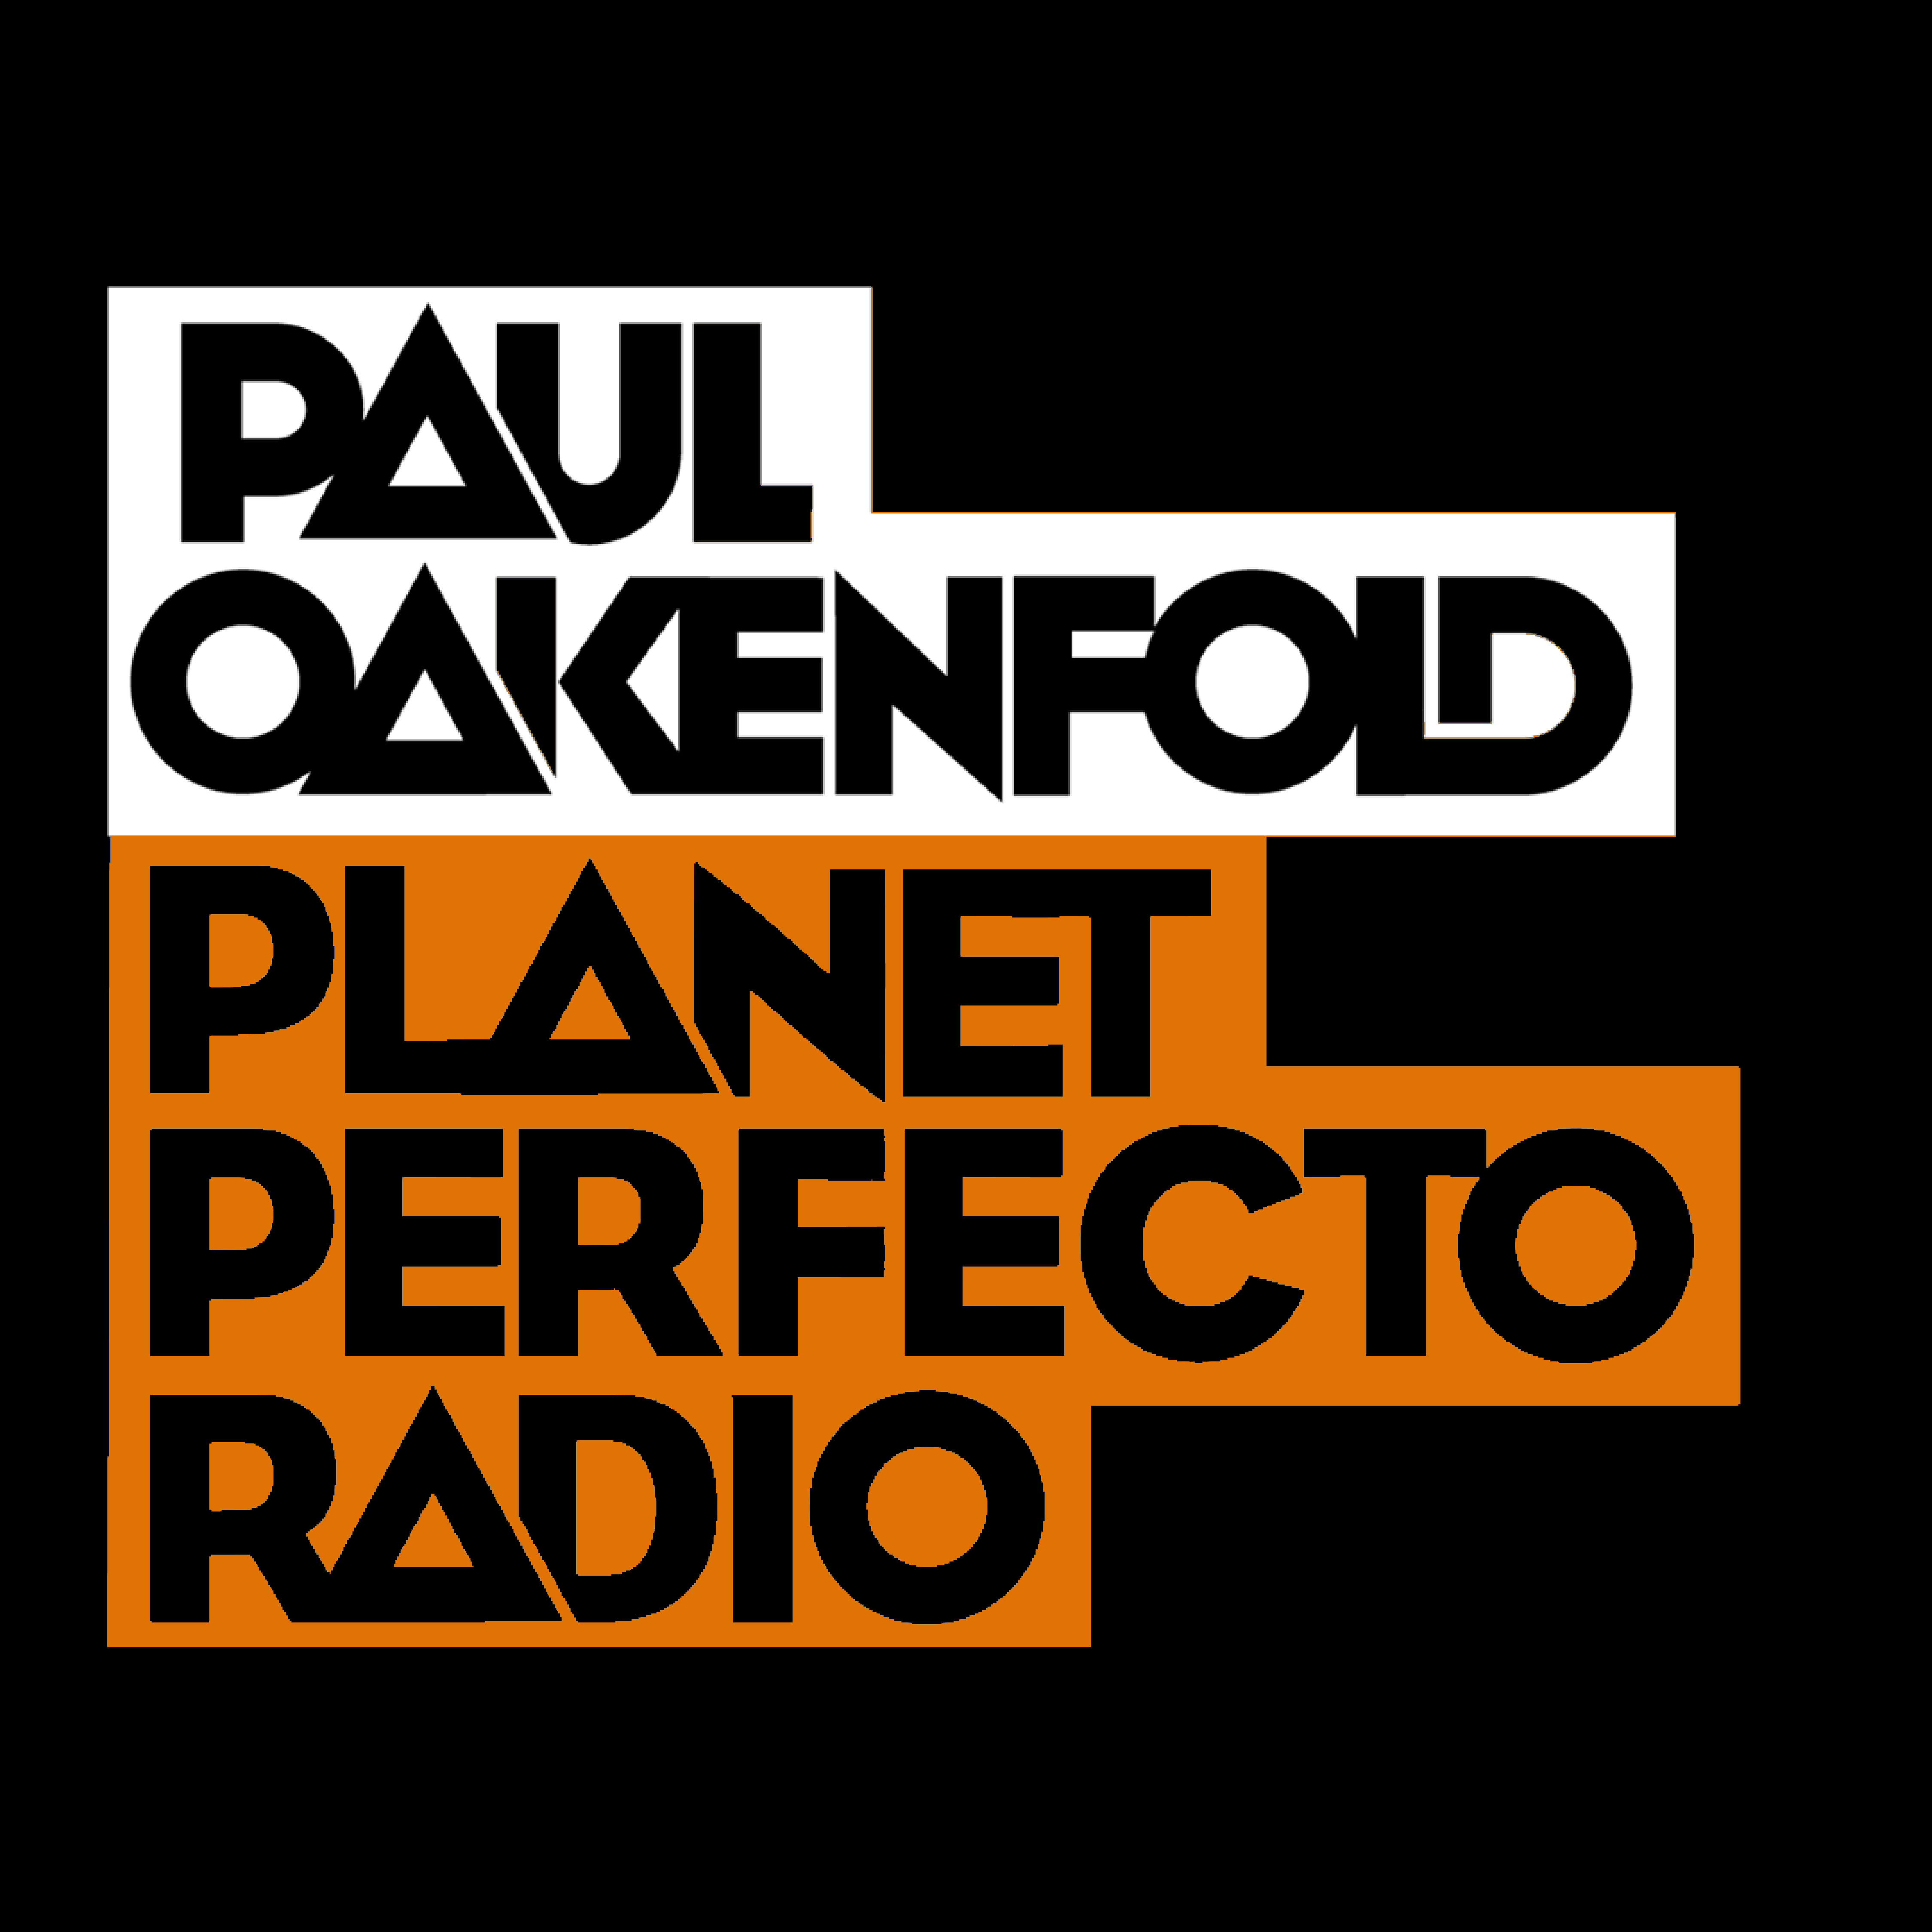 Planet Perfecto Podcast 551 ft. Paul Oakenfold